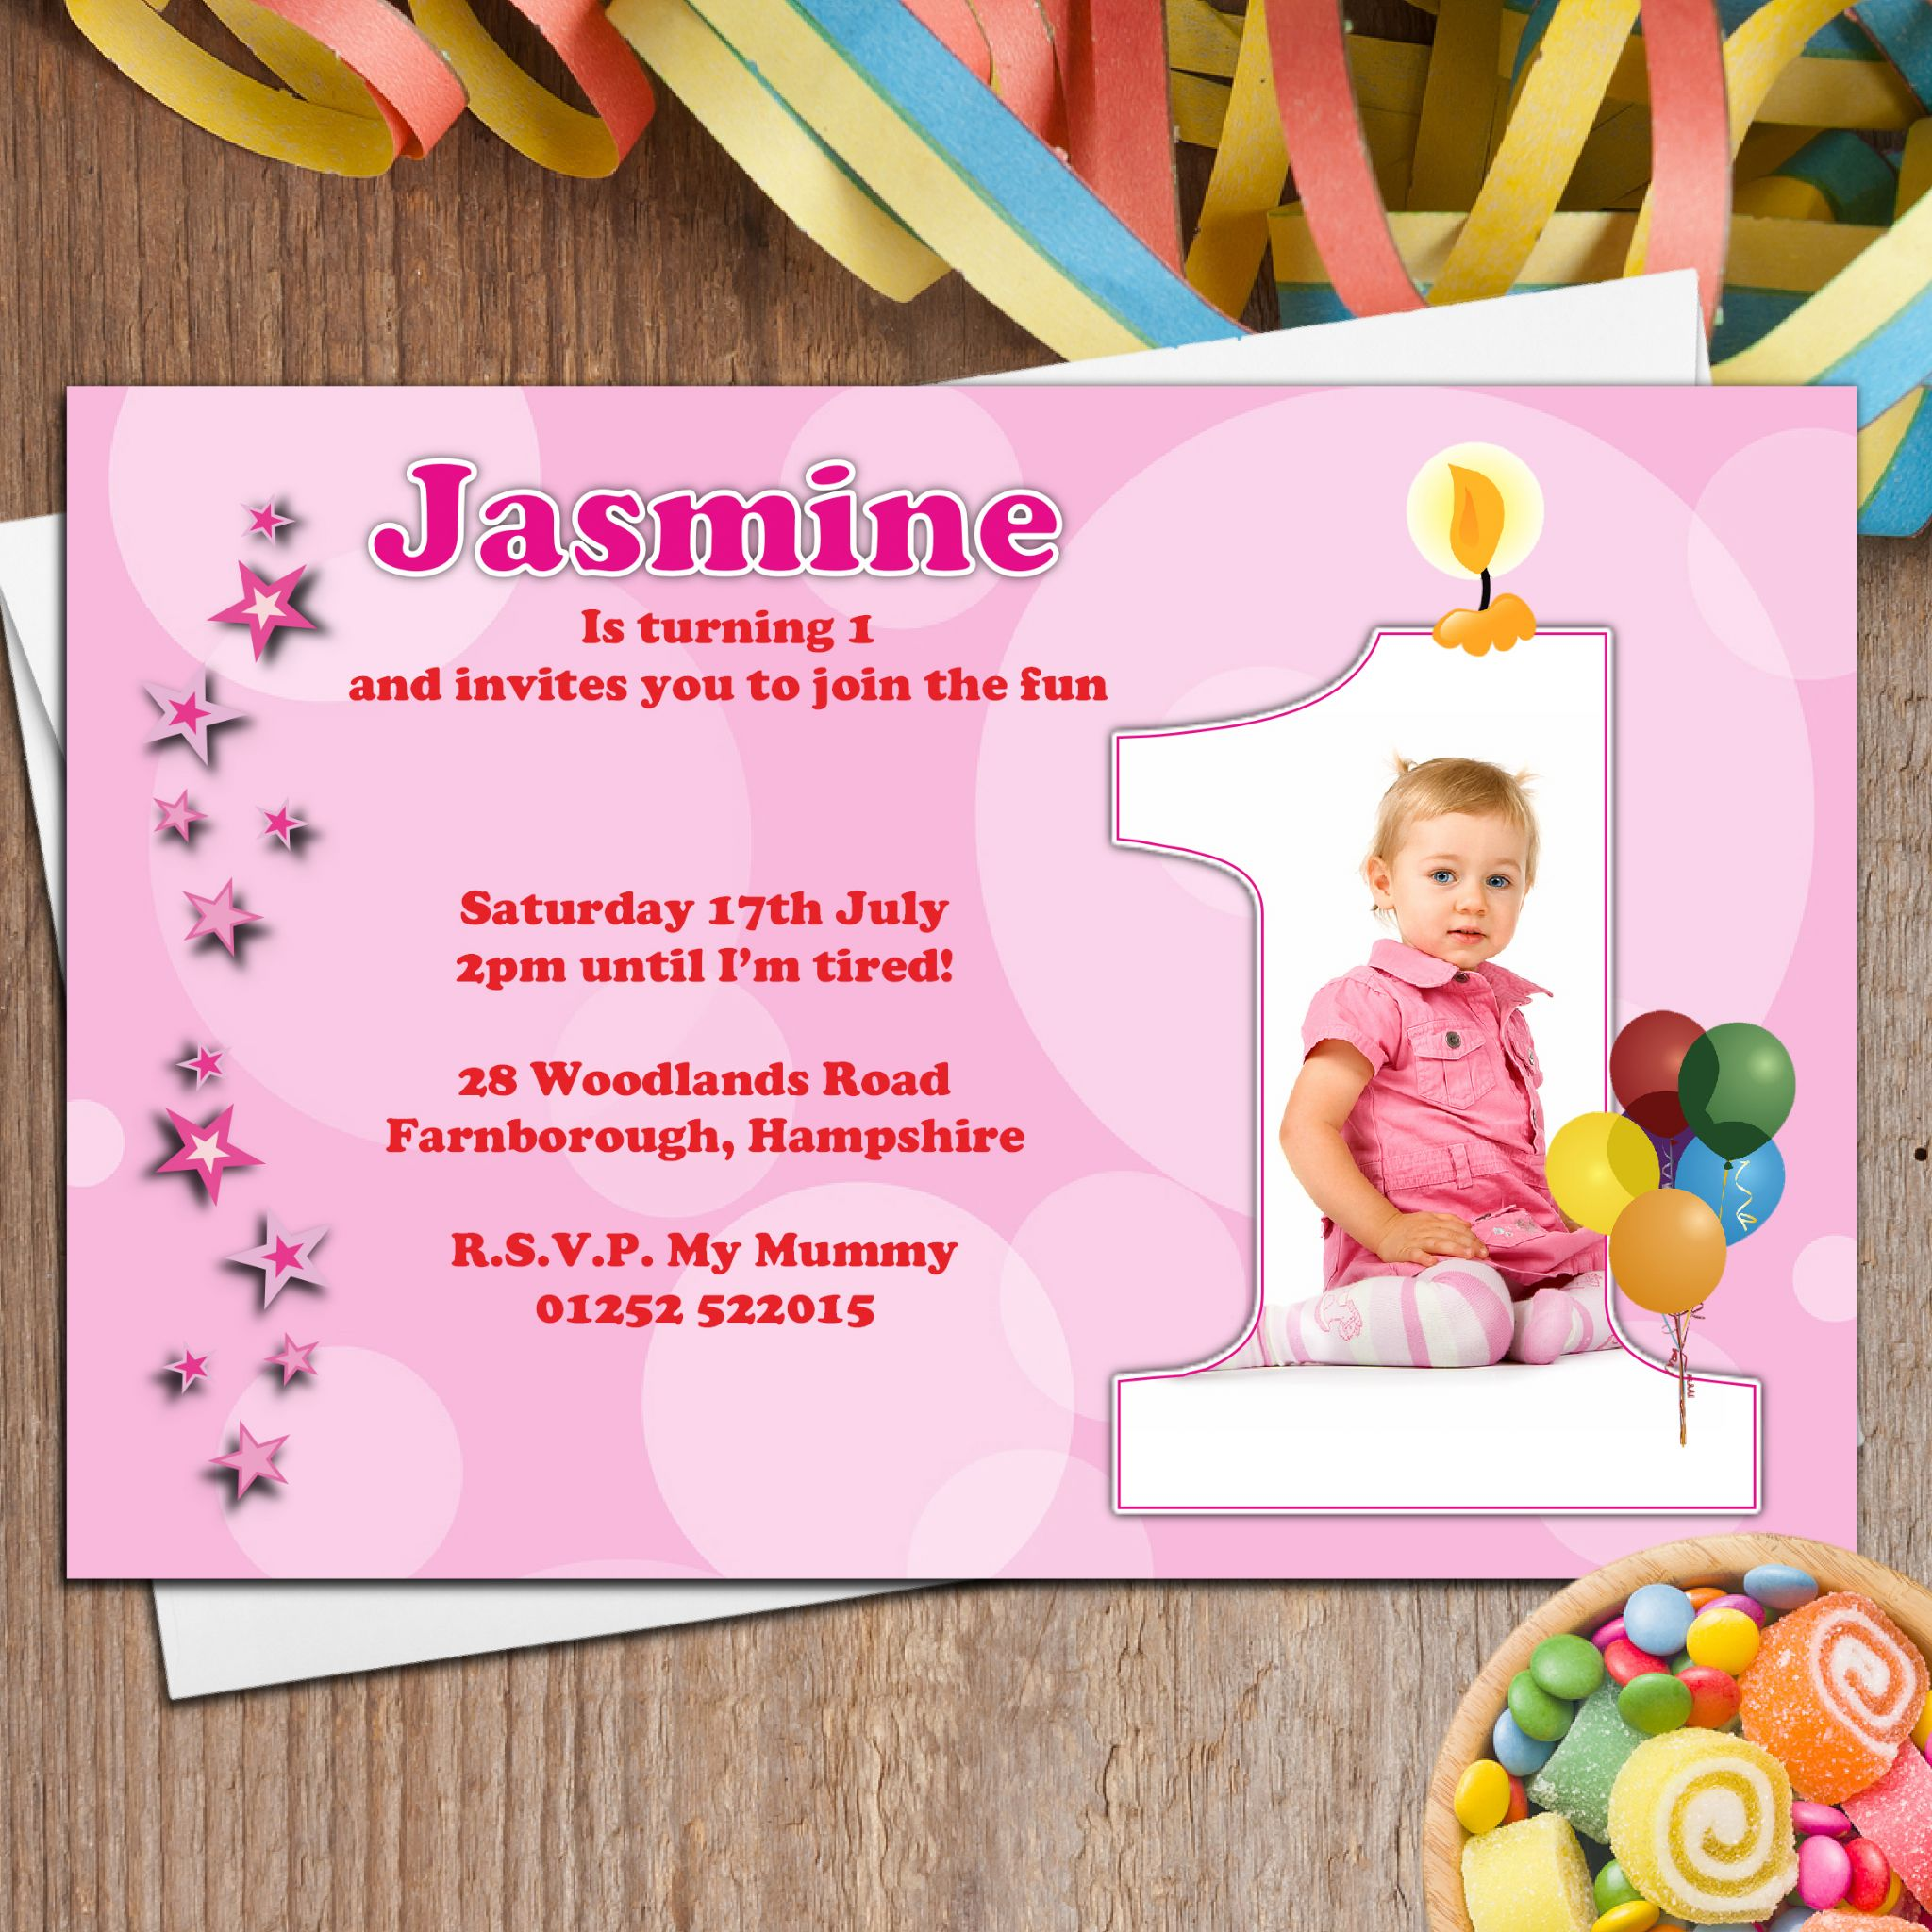 designs for invitation cards birthday ; Example-Invitation-Card-Birthday-Party-for-a-delightful-birthday-Card-design-with-delightful-layout-14